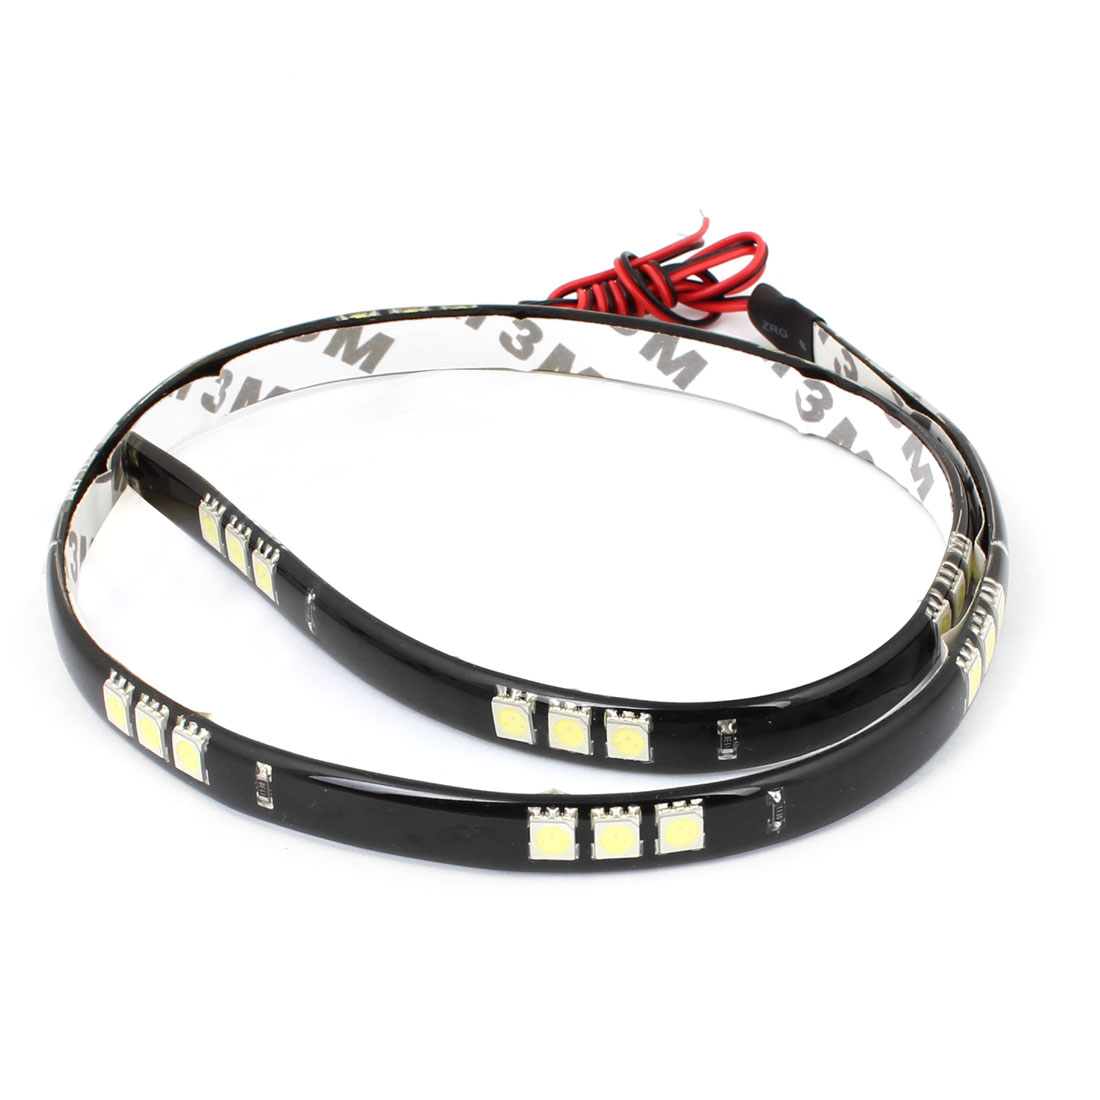 White 30 LED 5050 SMD Adhesive Car Truck Flexible Waterproof Light Strip 60CM